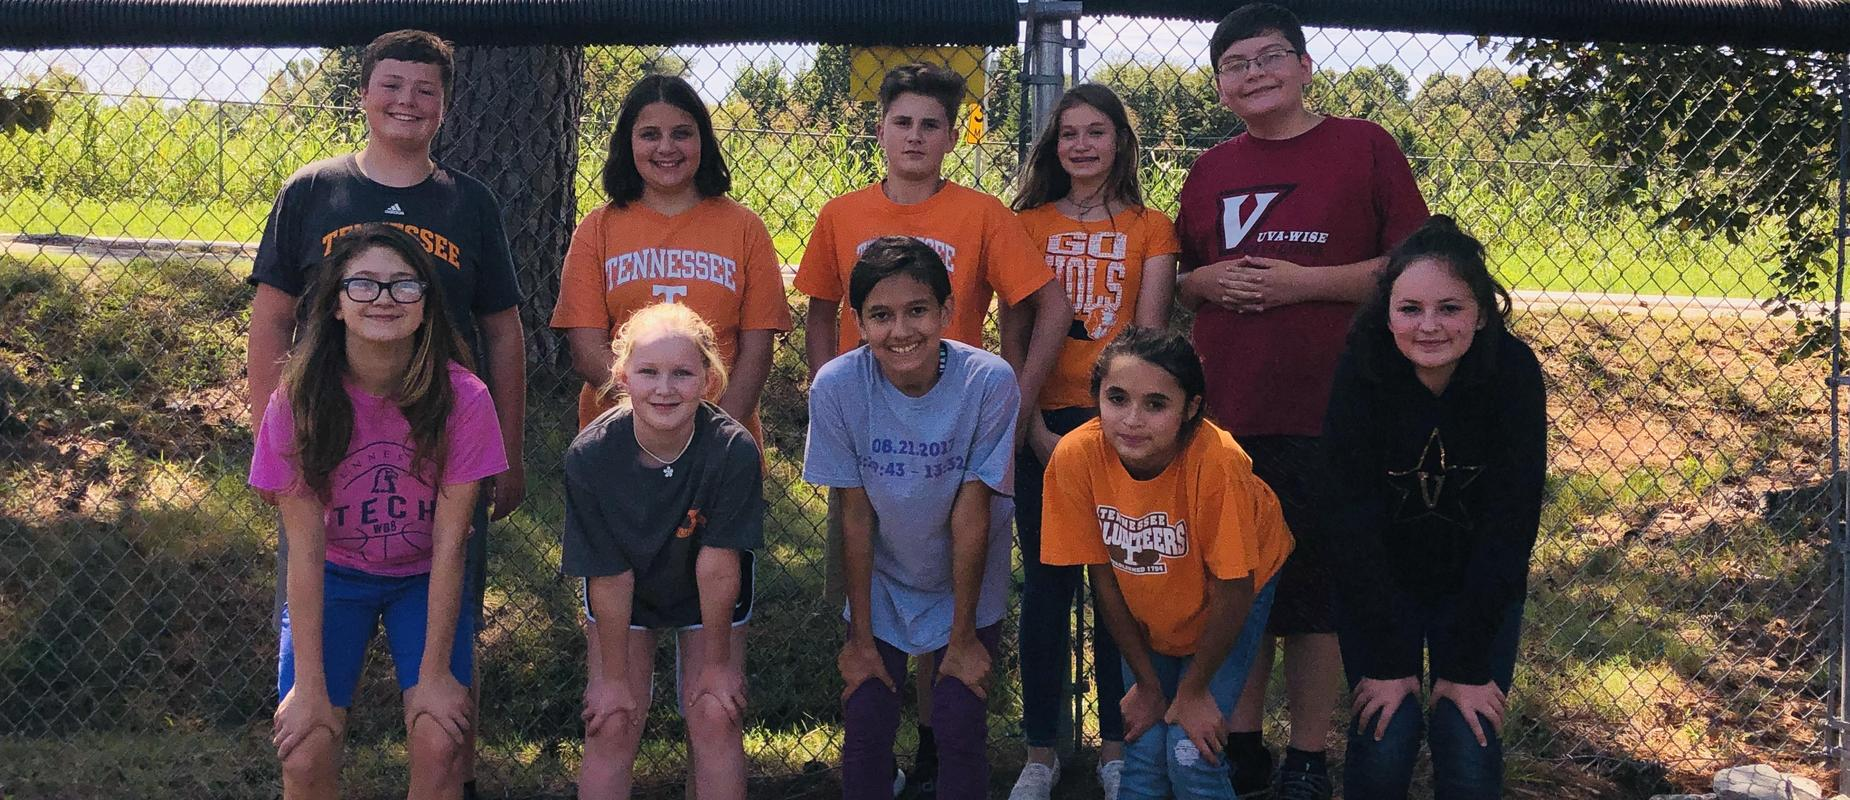 6th - 8th grade students wearing college colors